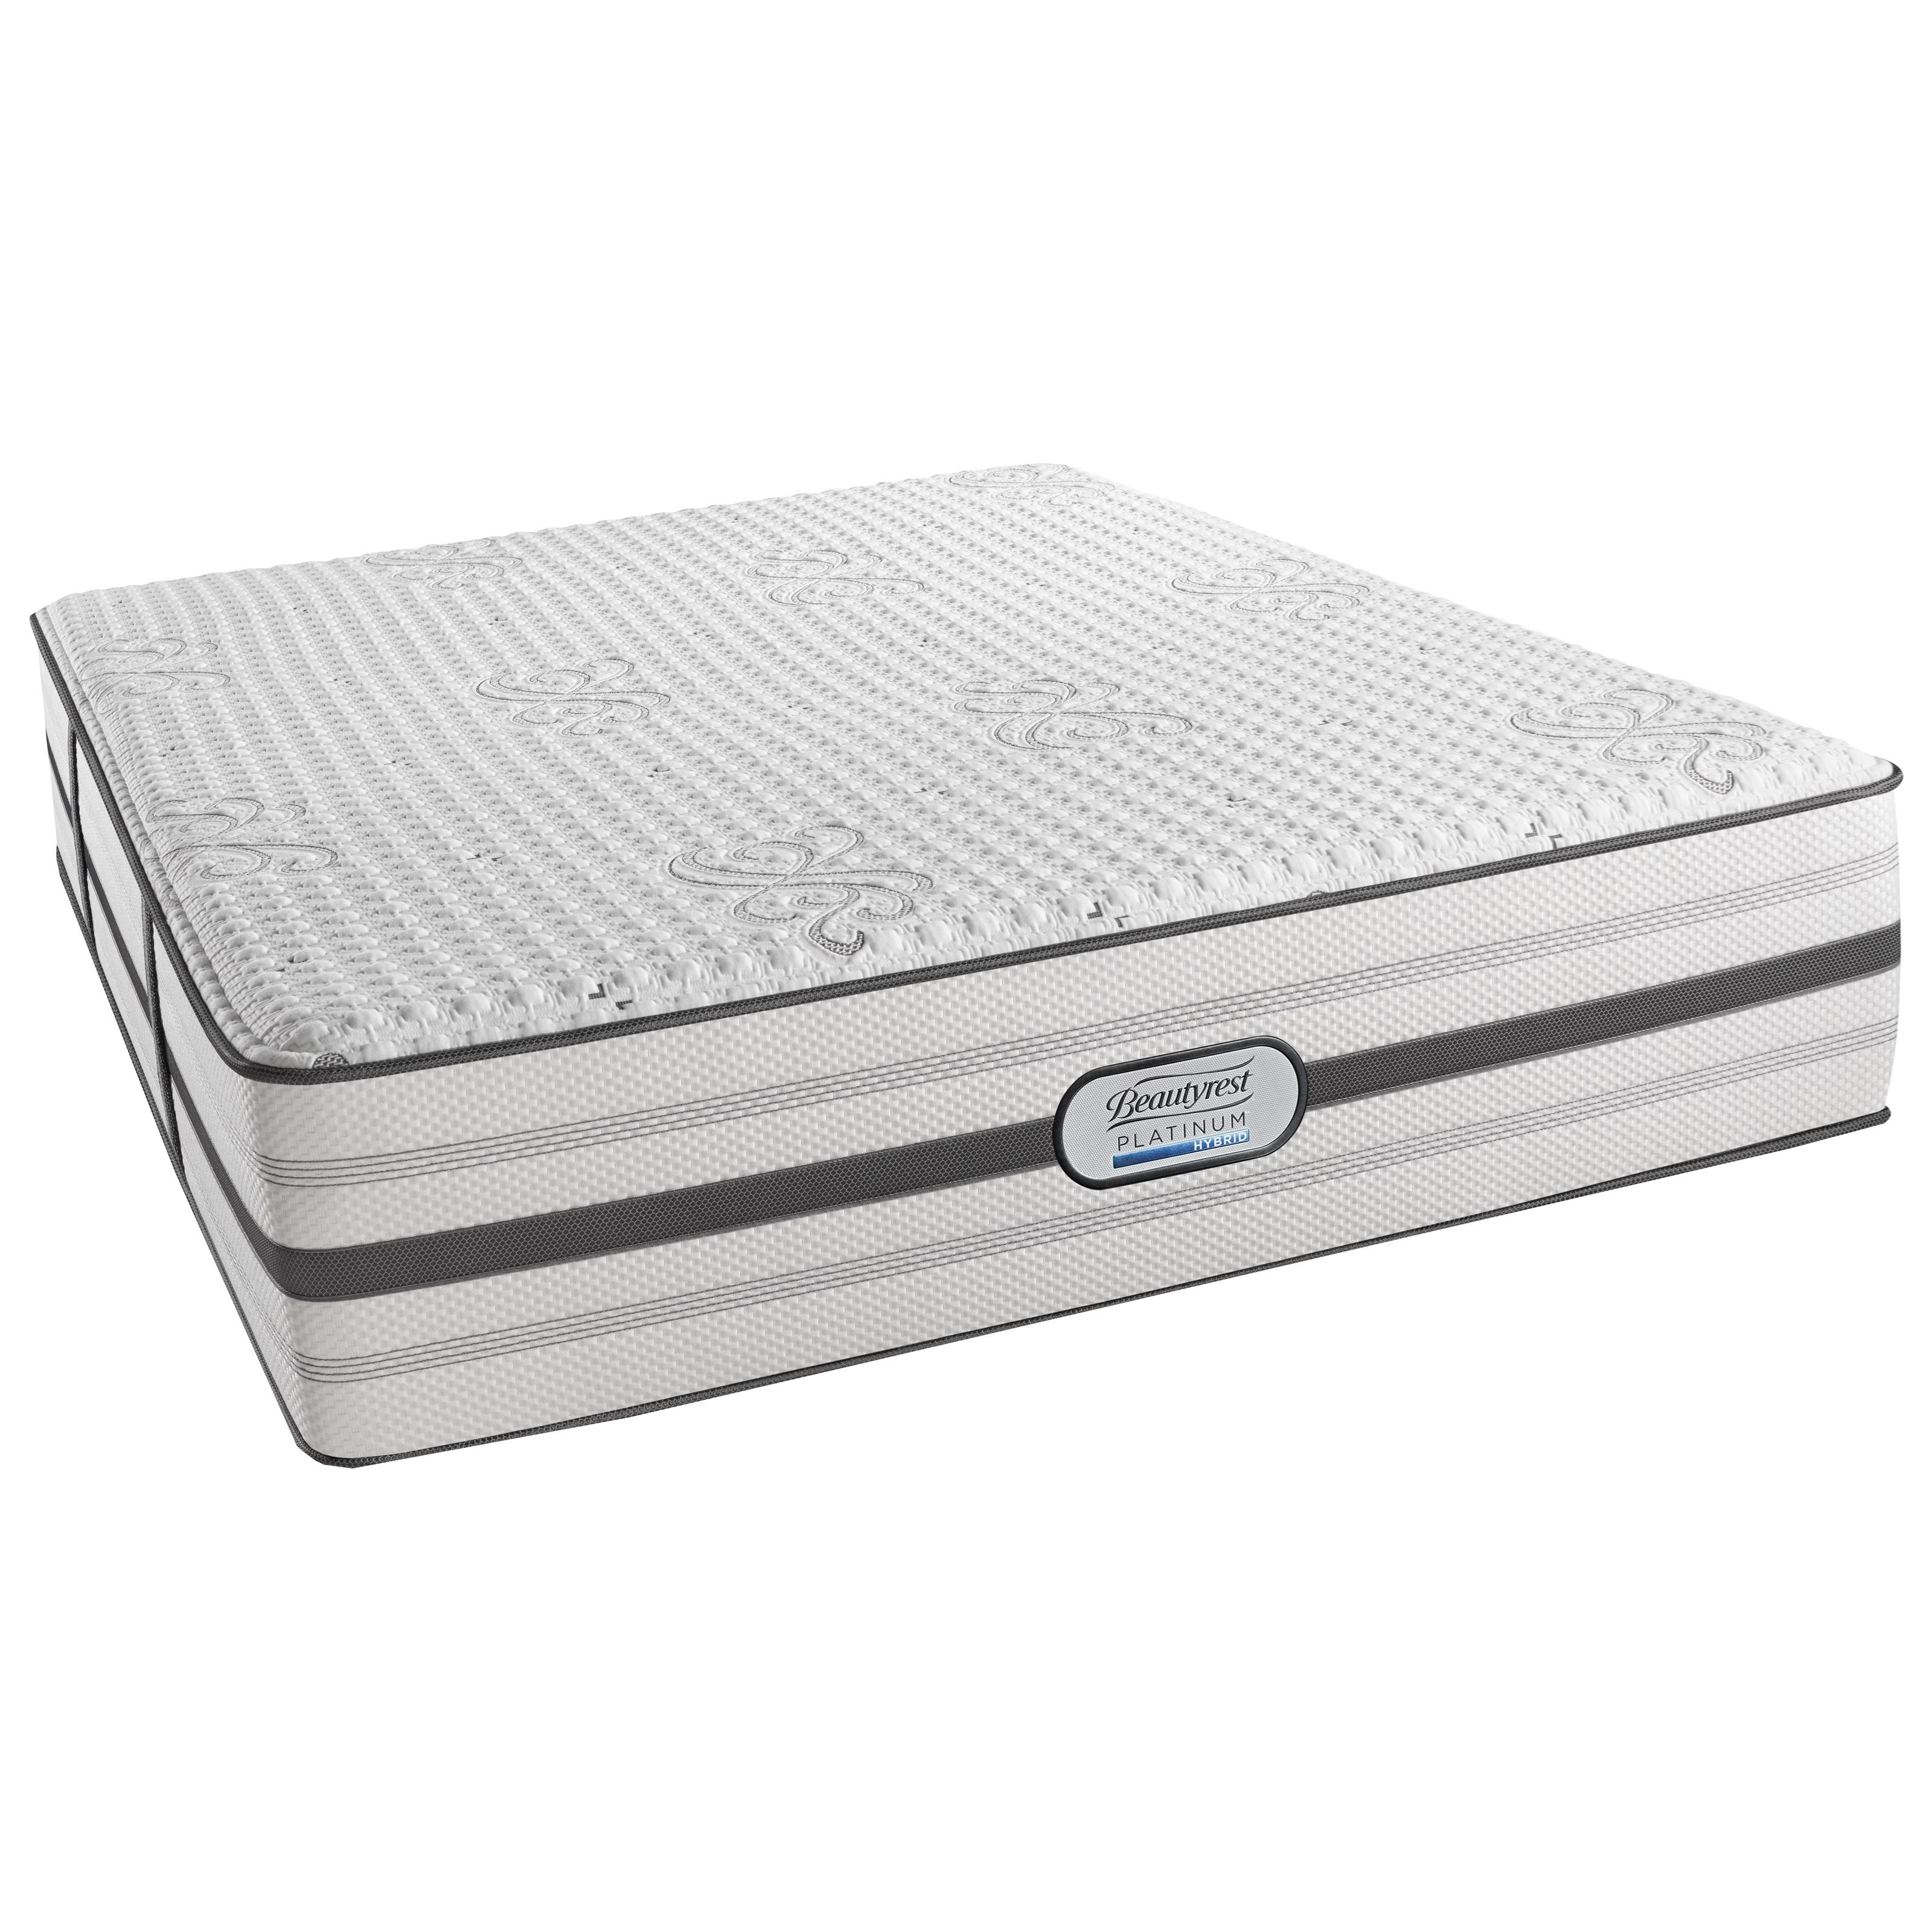 Beautyrest Platinum Austin Queen Luxury Firm Mattress - Item Number: BRHLV1LF-Q